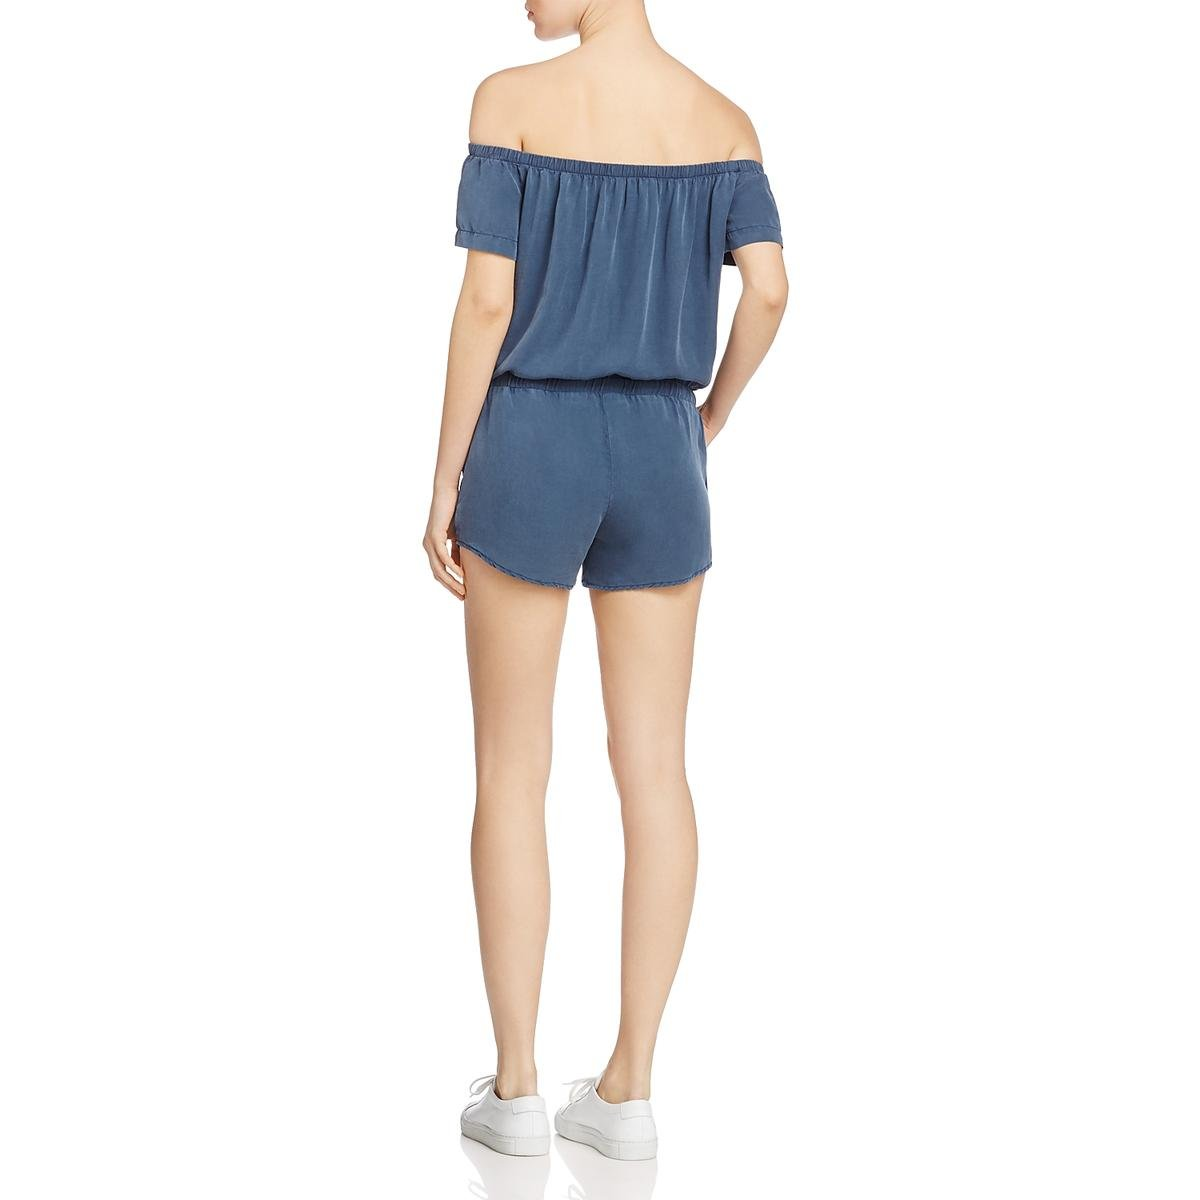 57d21ae927a Amazon.com  Bella Dahl Womens Off The Shoulder Short Sleeves Romper Blue  XS  Clothing